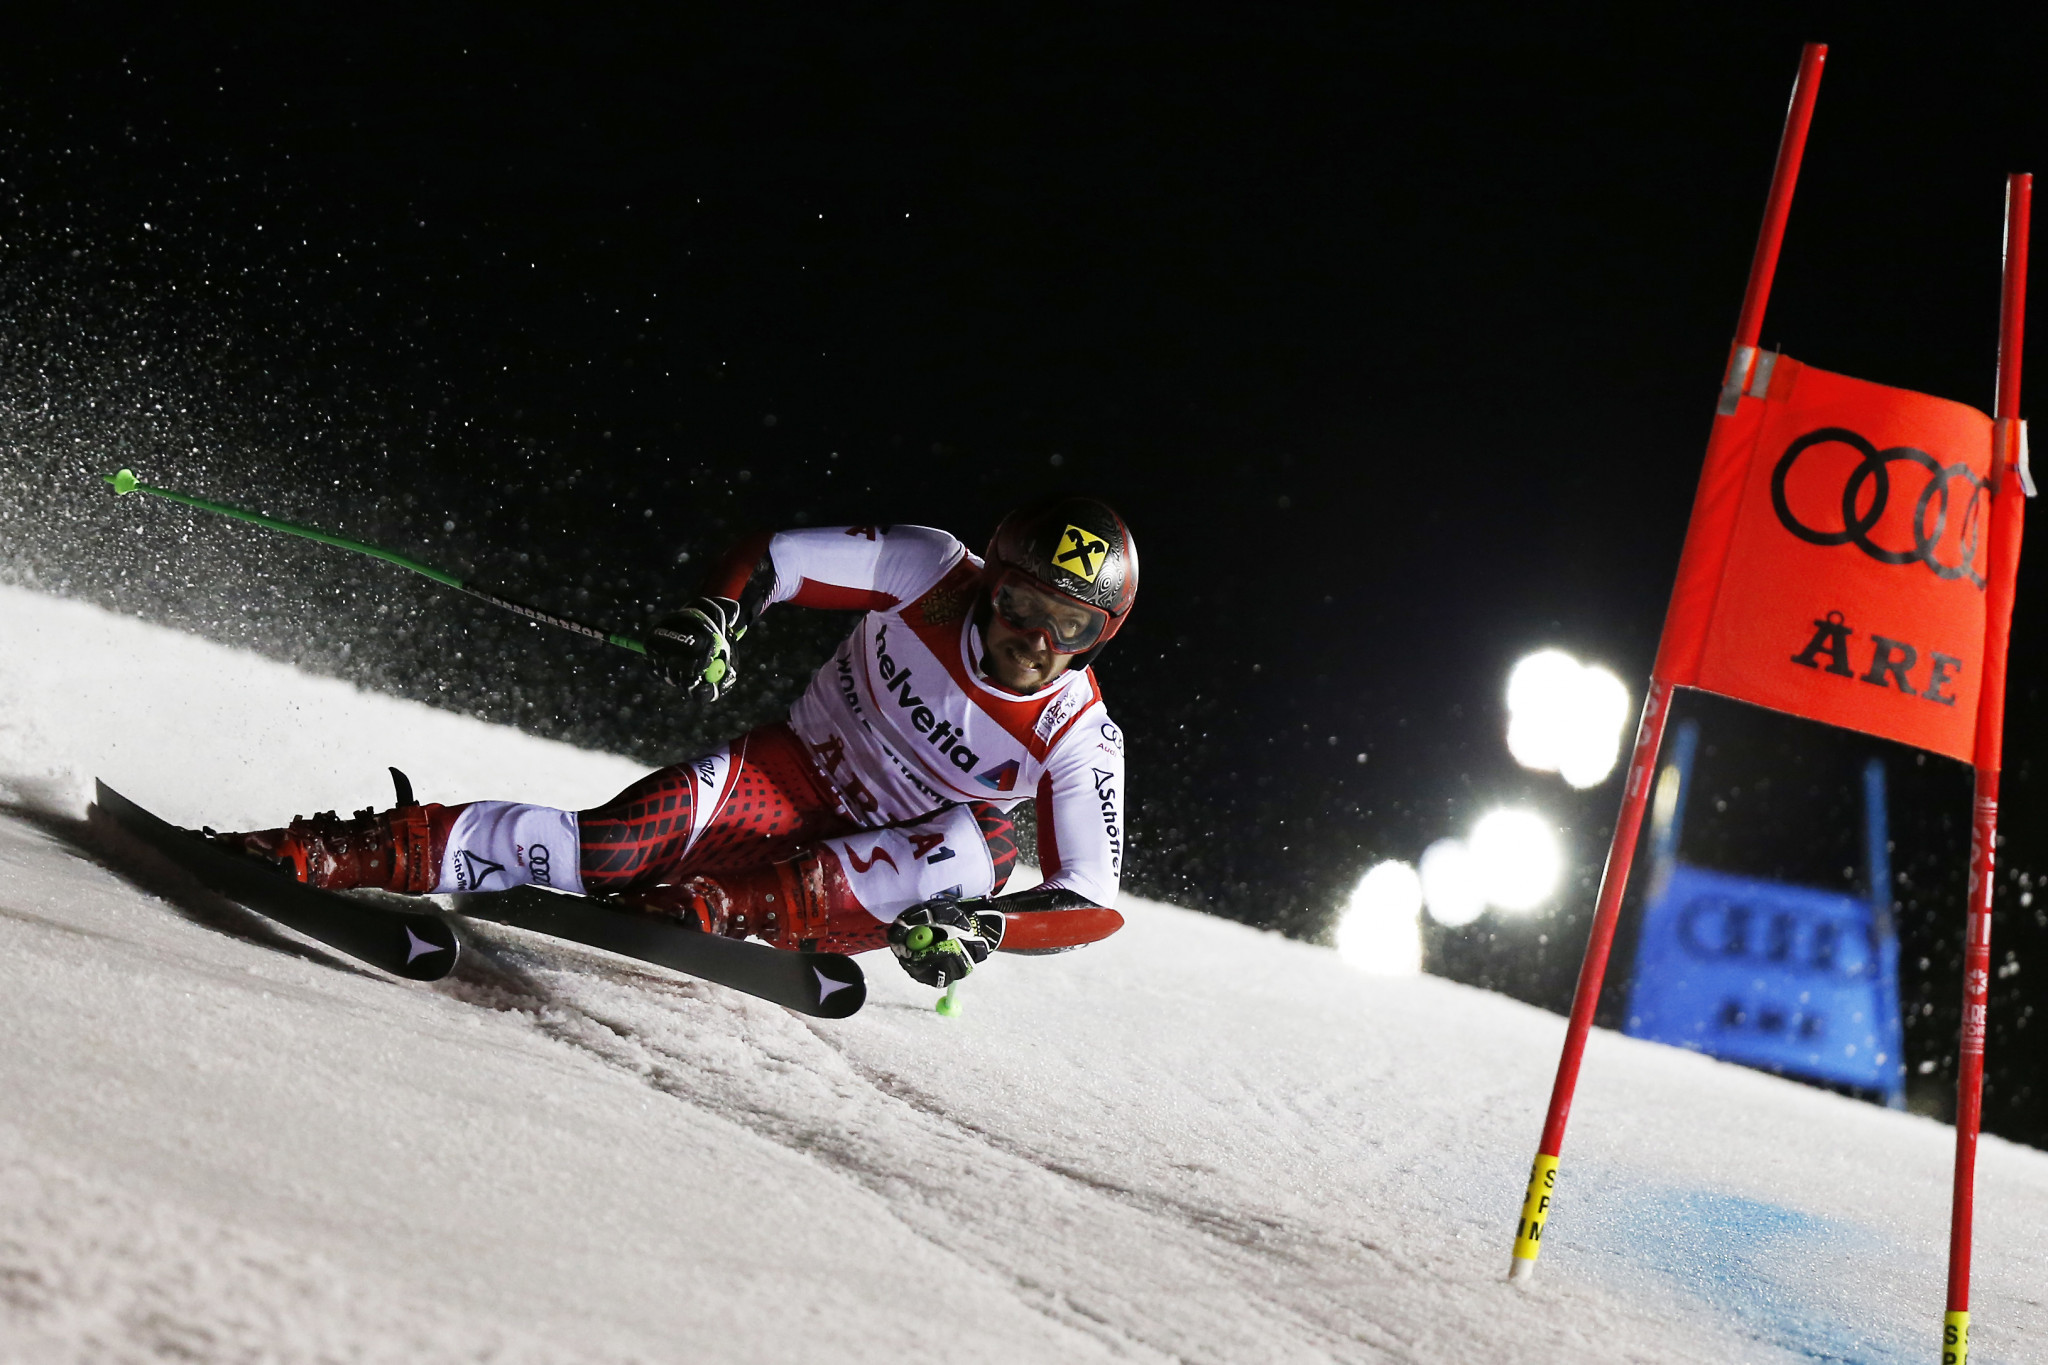 Austria's defending champion Marcel Hirscher had to settle for the silver medal ©Getty Images